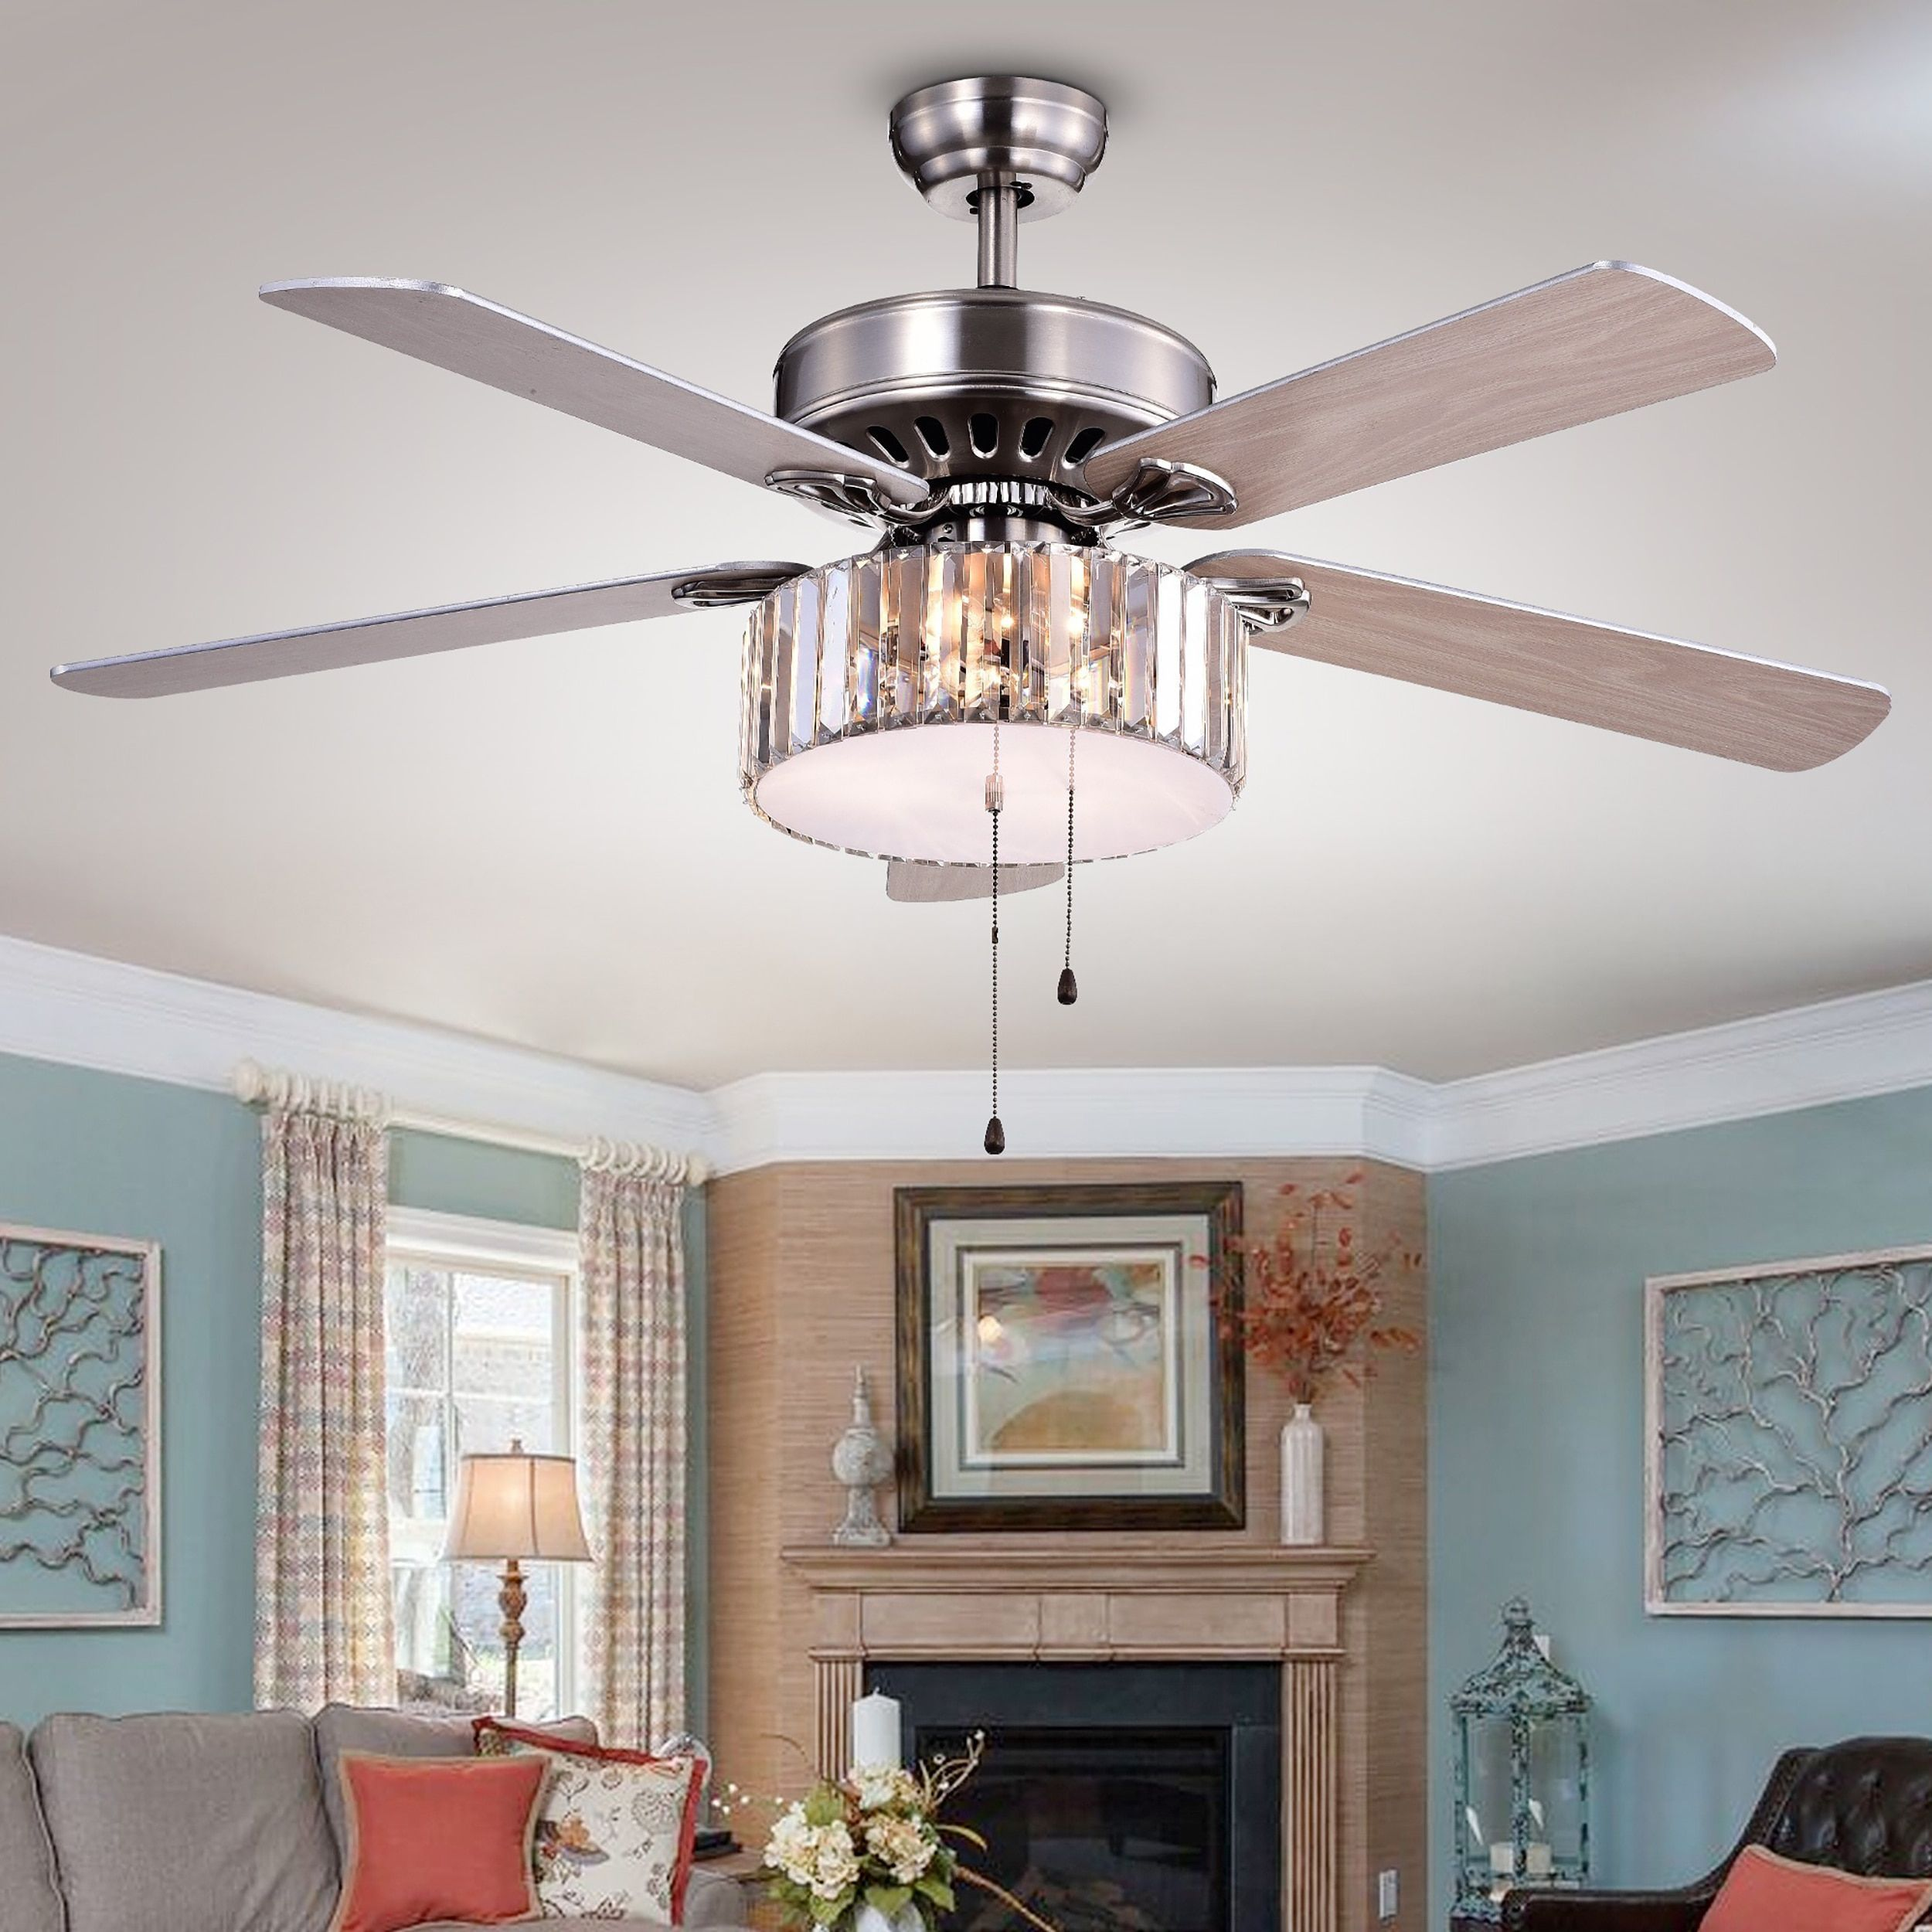 Crystal ceiling fan home garden lamps lighting ceiling fans crystal ceiling fan home garden lamps lighting ceiling fans chandeliers ceiling no place like home pinterest ceiling fan ceiling fans arubaitofo Images